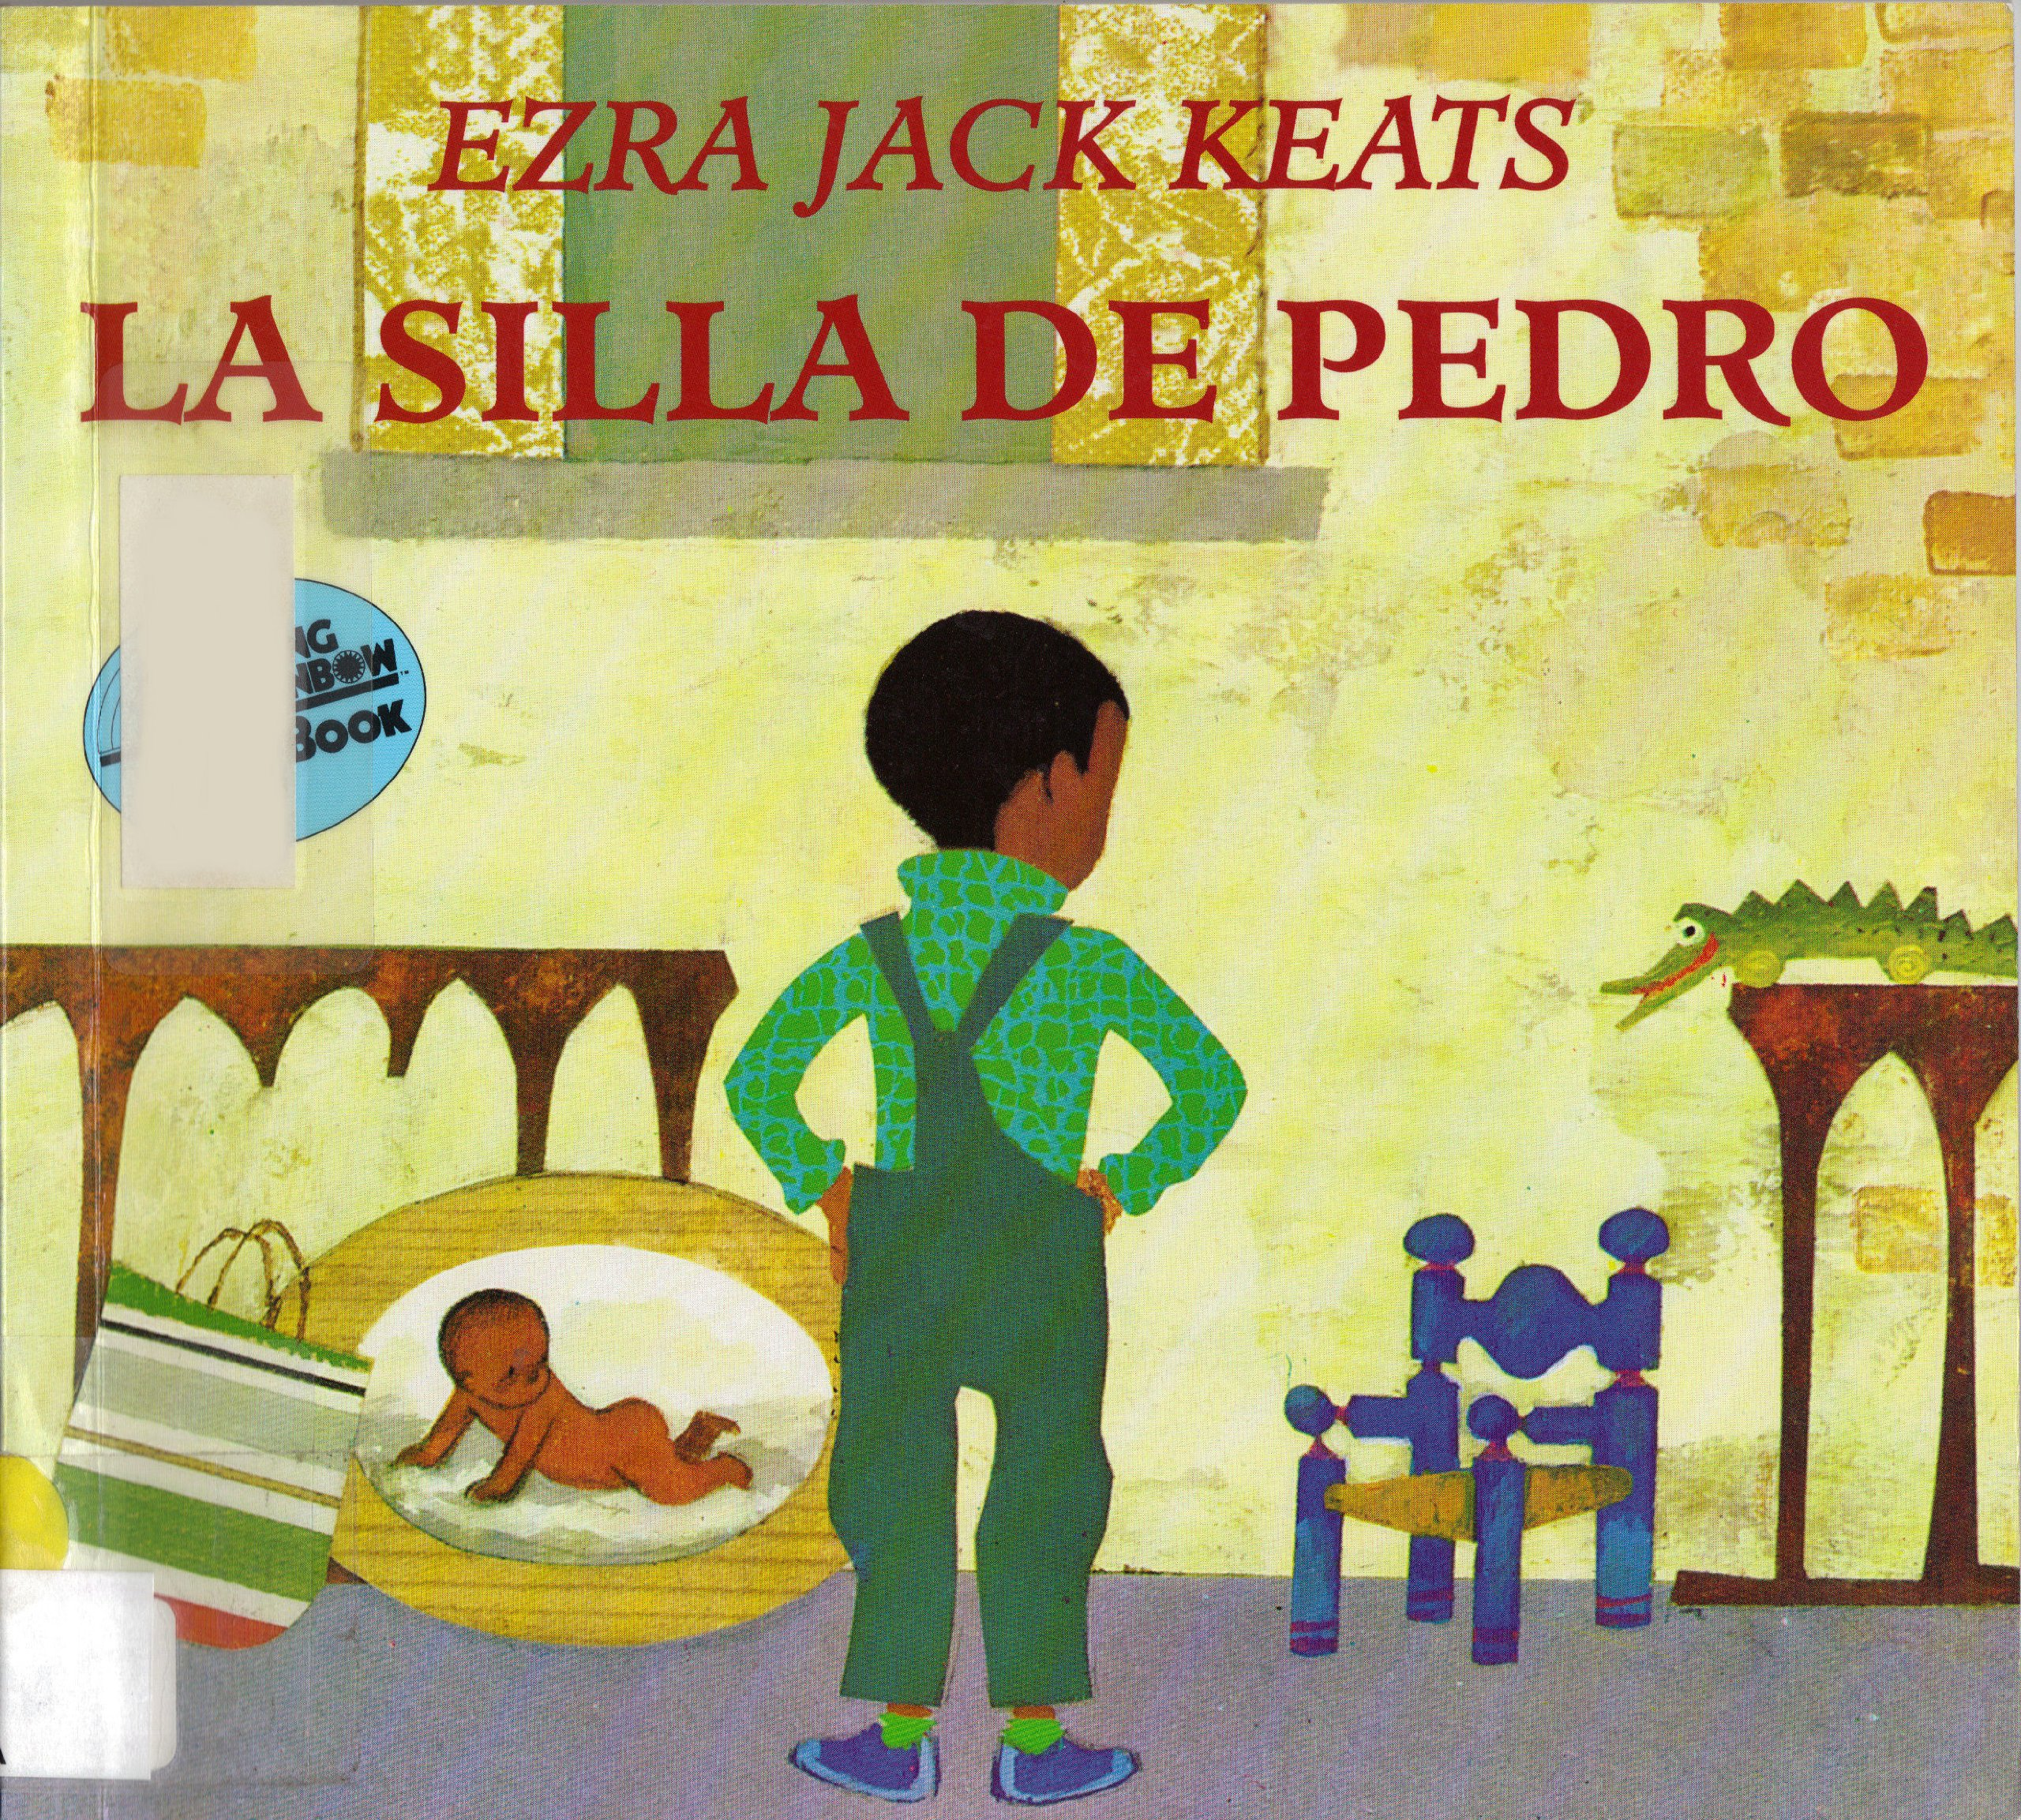 La Silla De Pedro / Peters Chair (Reading Rainbow Book) (Spanish Edition) (Spanish) Paperback – February 1, 1996